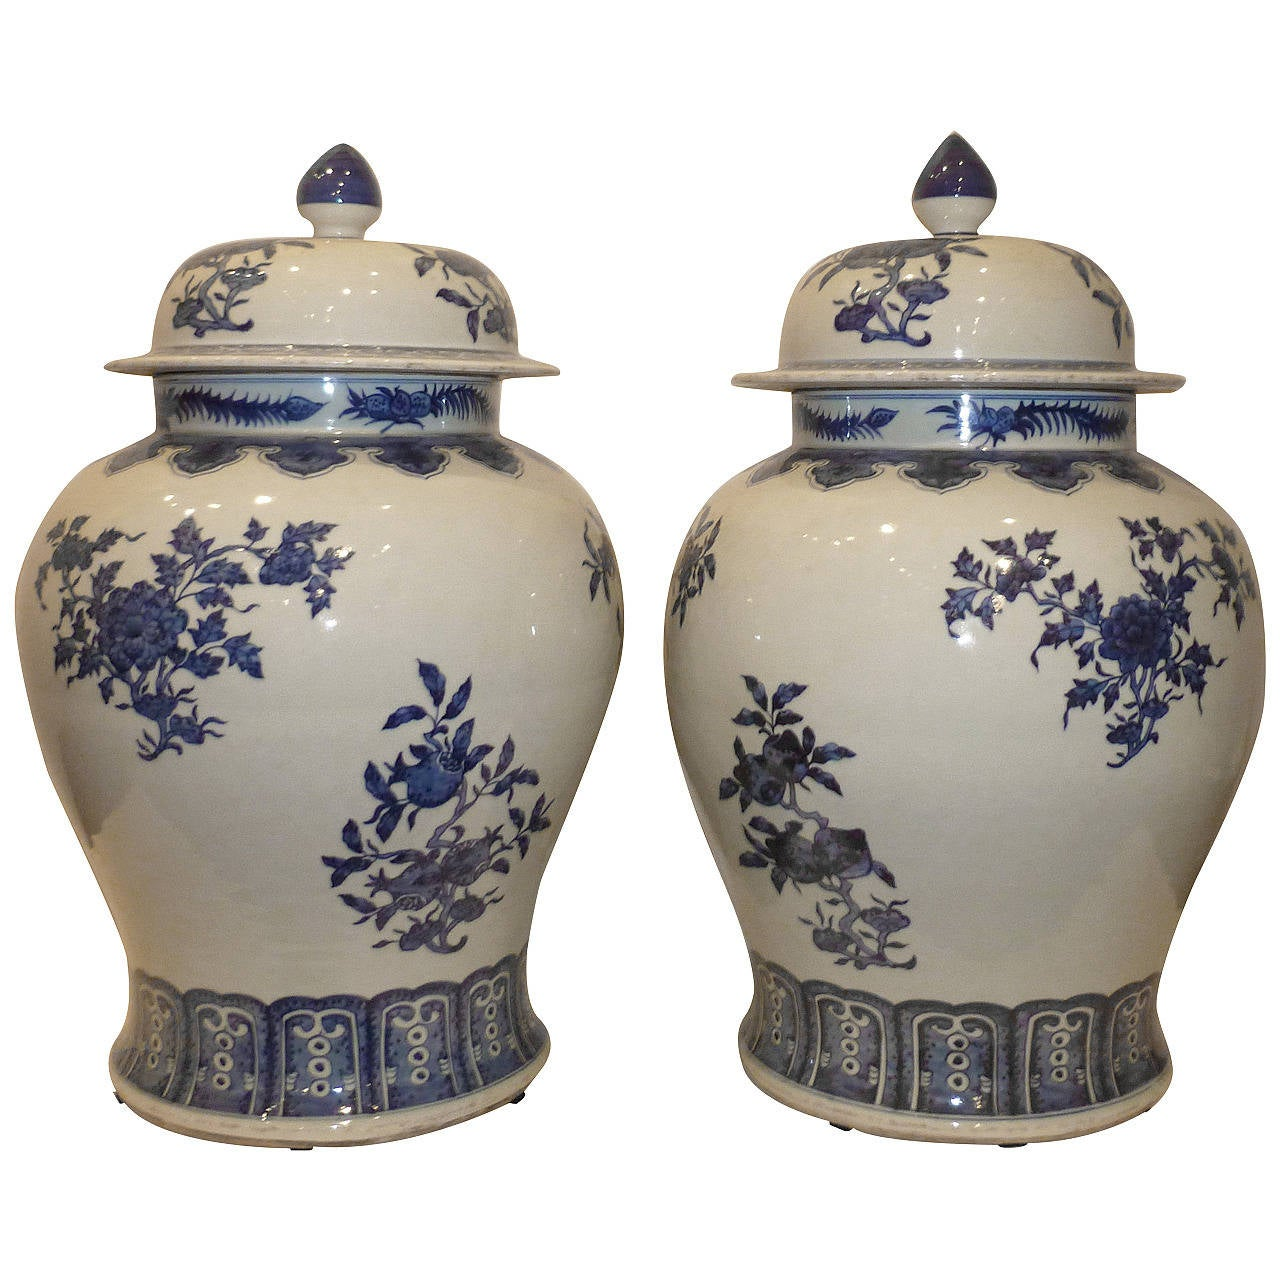 A Pair of Blue and White Porcelain Jars with Covers